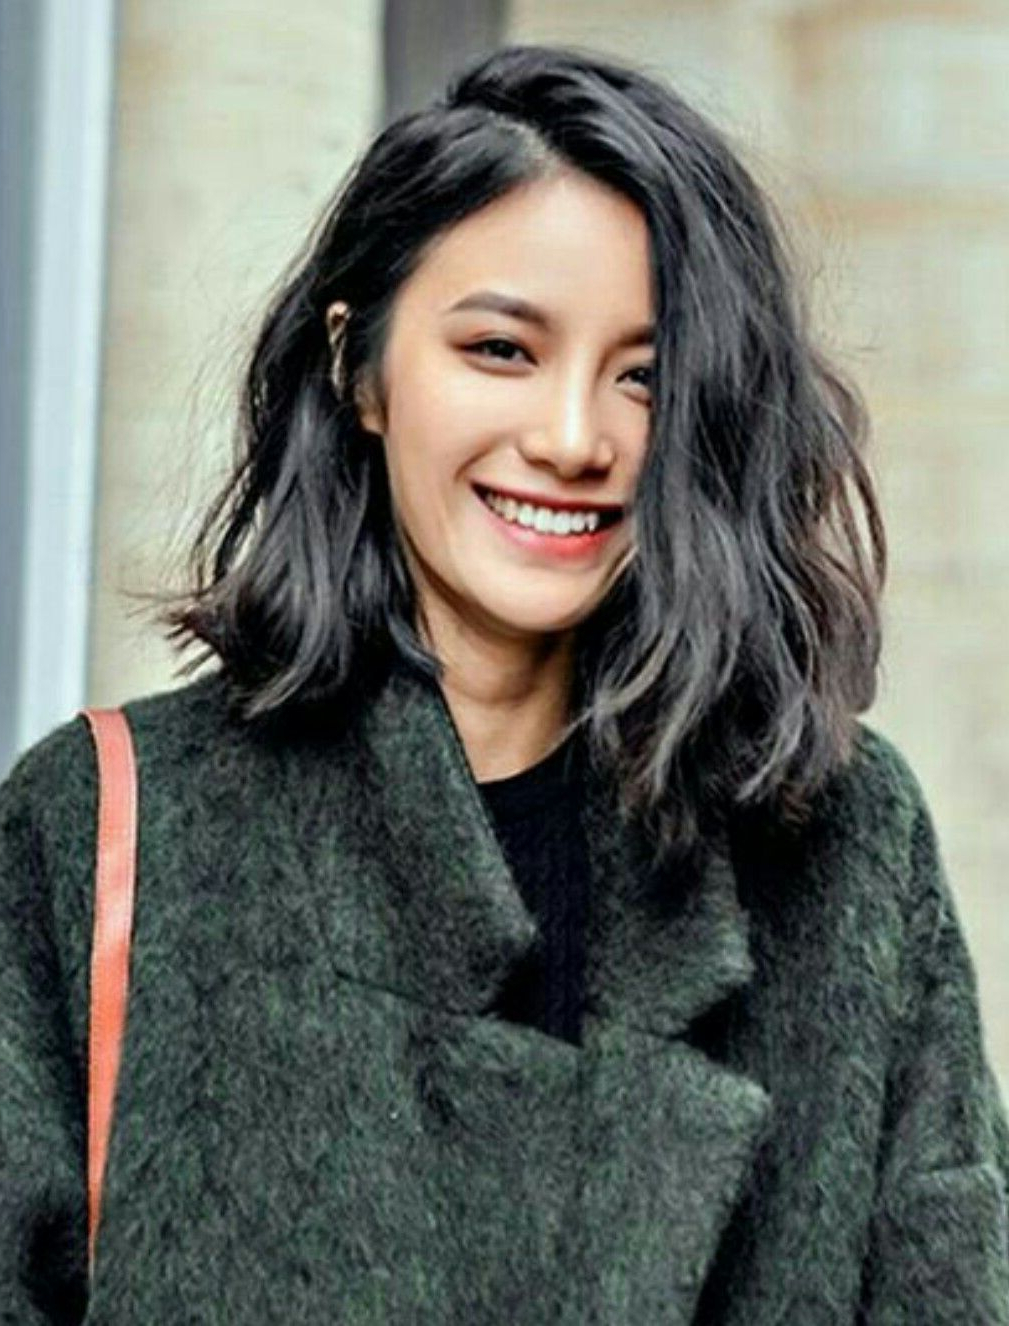 Wavy Shoulder Length With Blunt Ends | Hair In 2018 | Pinterest For Shorter Black Messy Hairstyles (View 24 of 25)